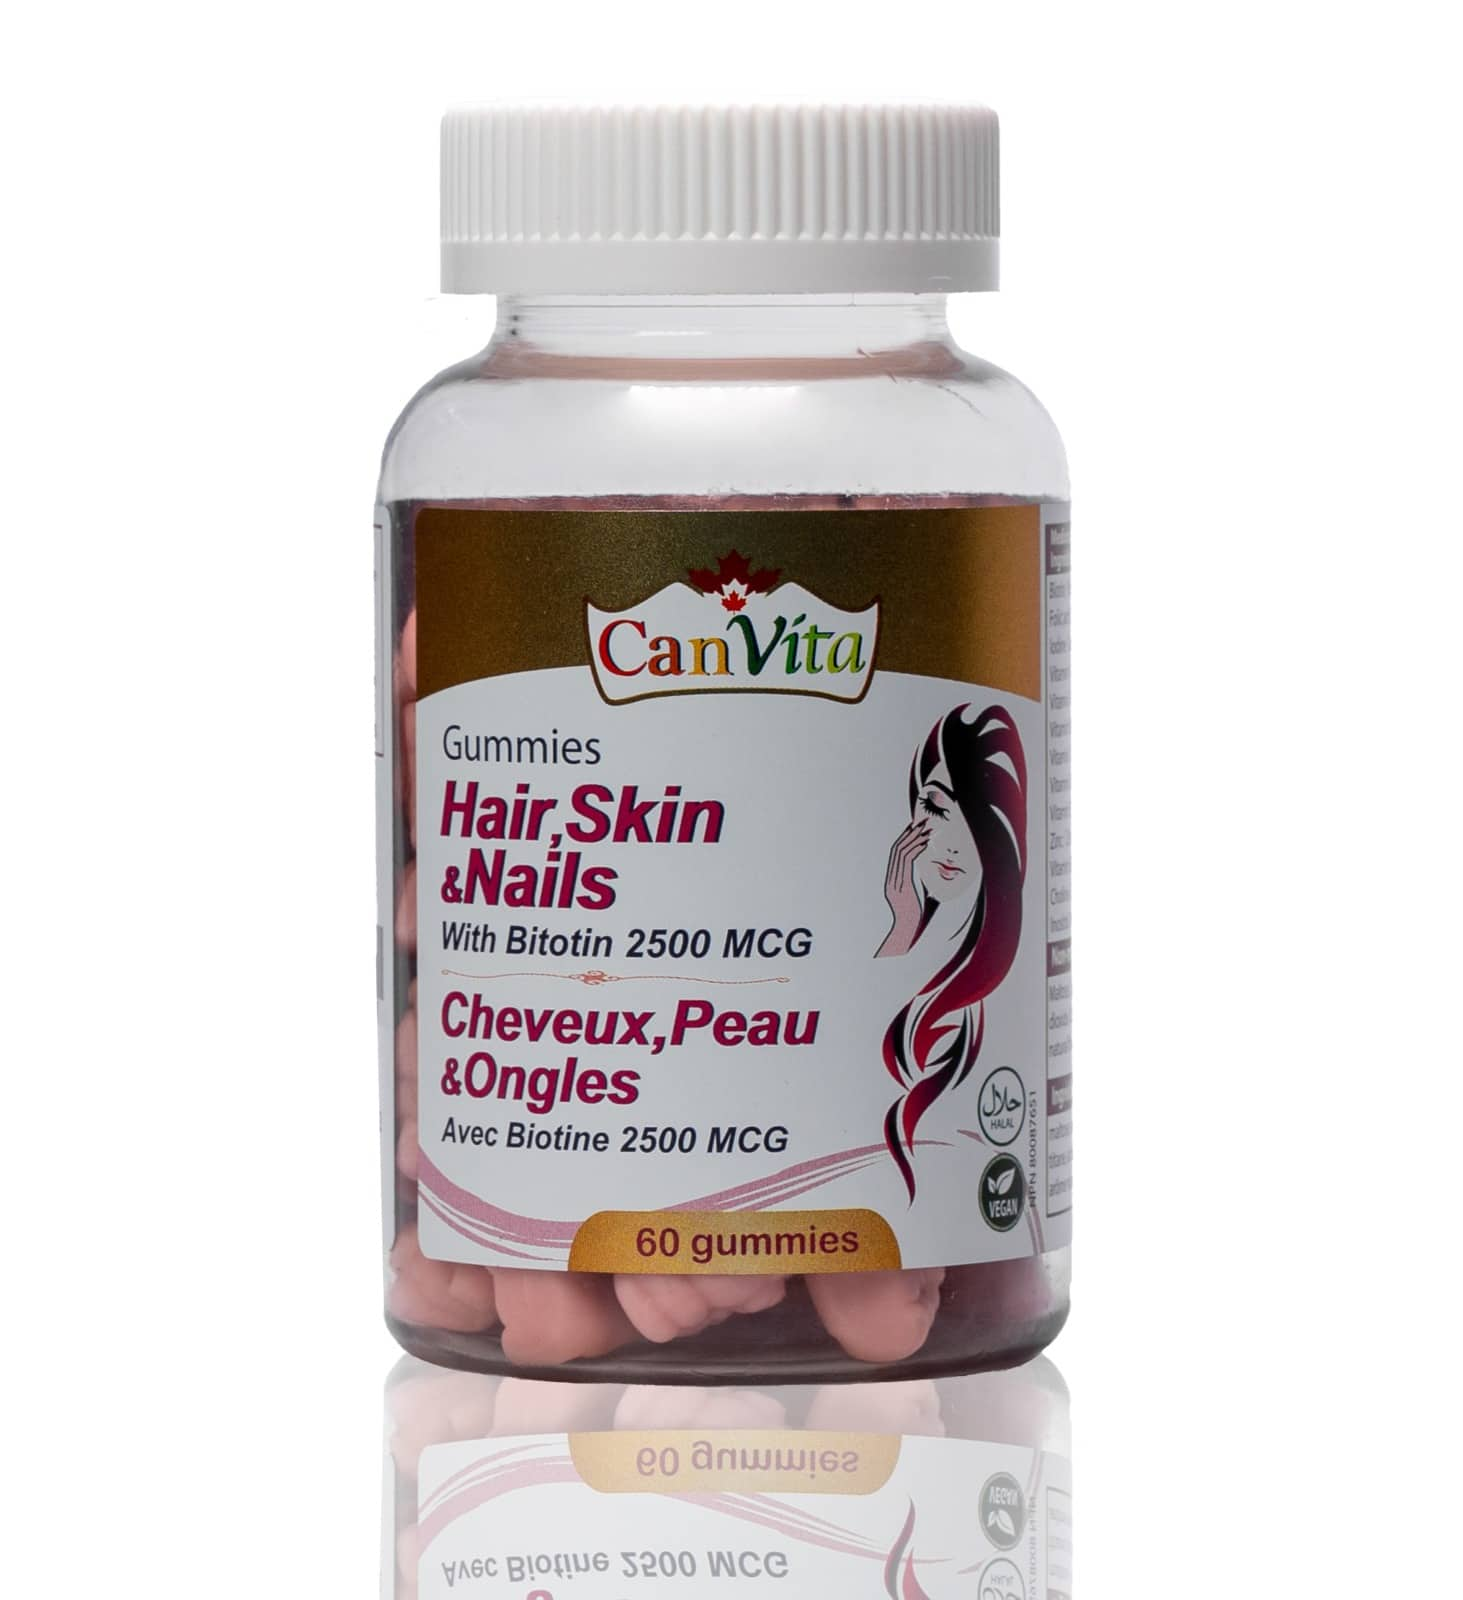 Canvita Hair, skin and nails gummy